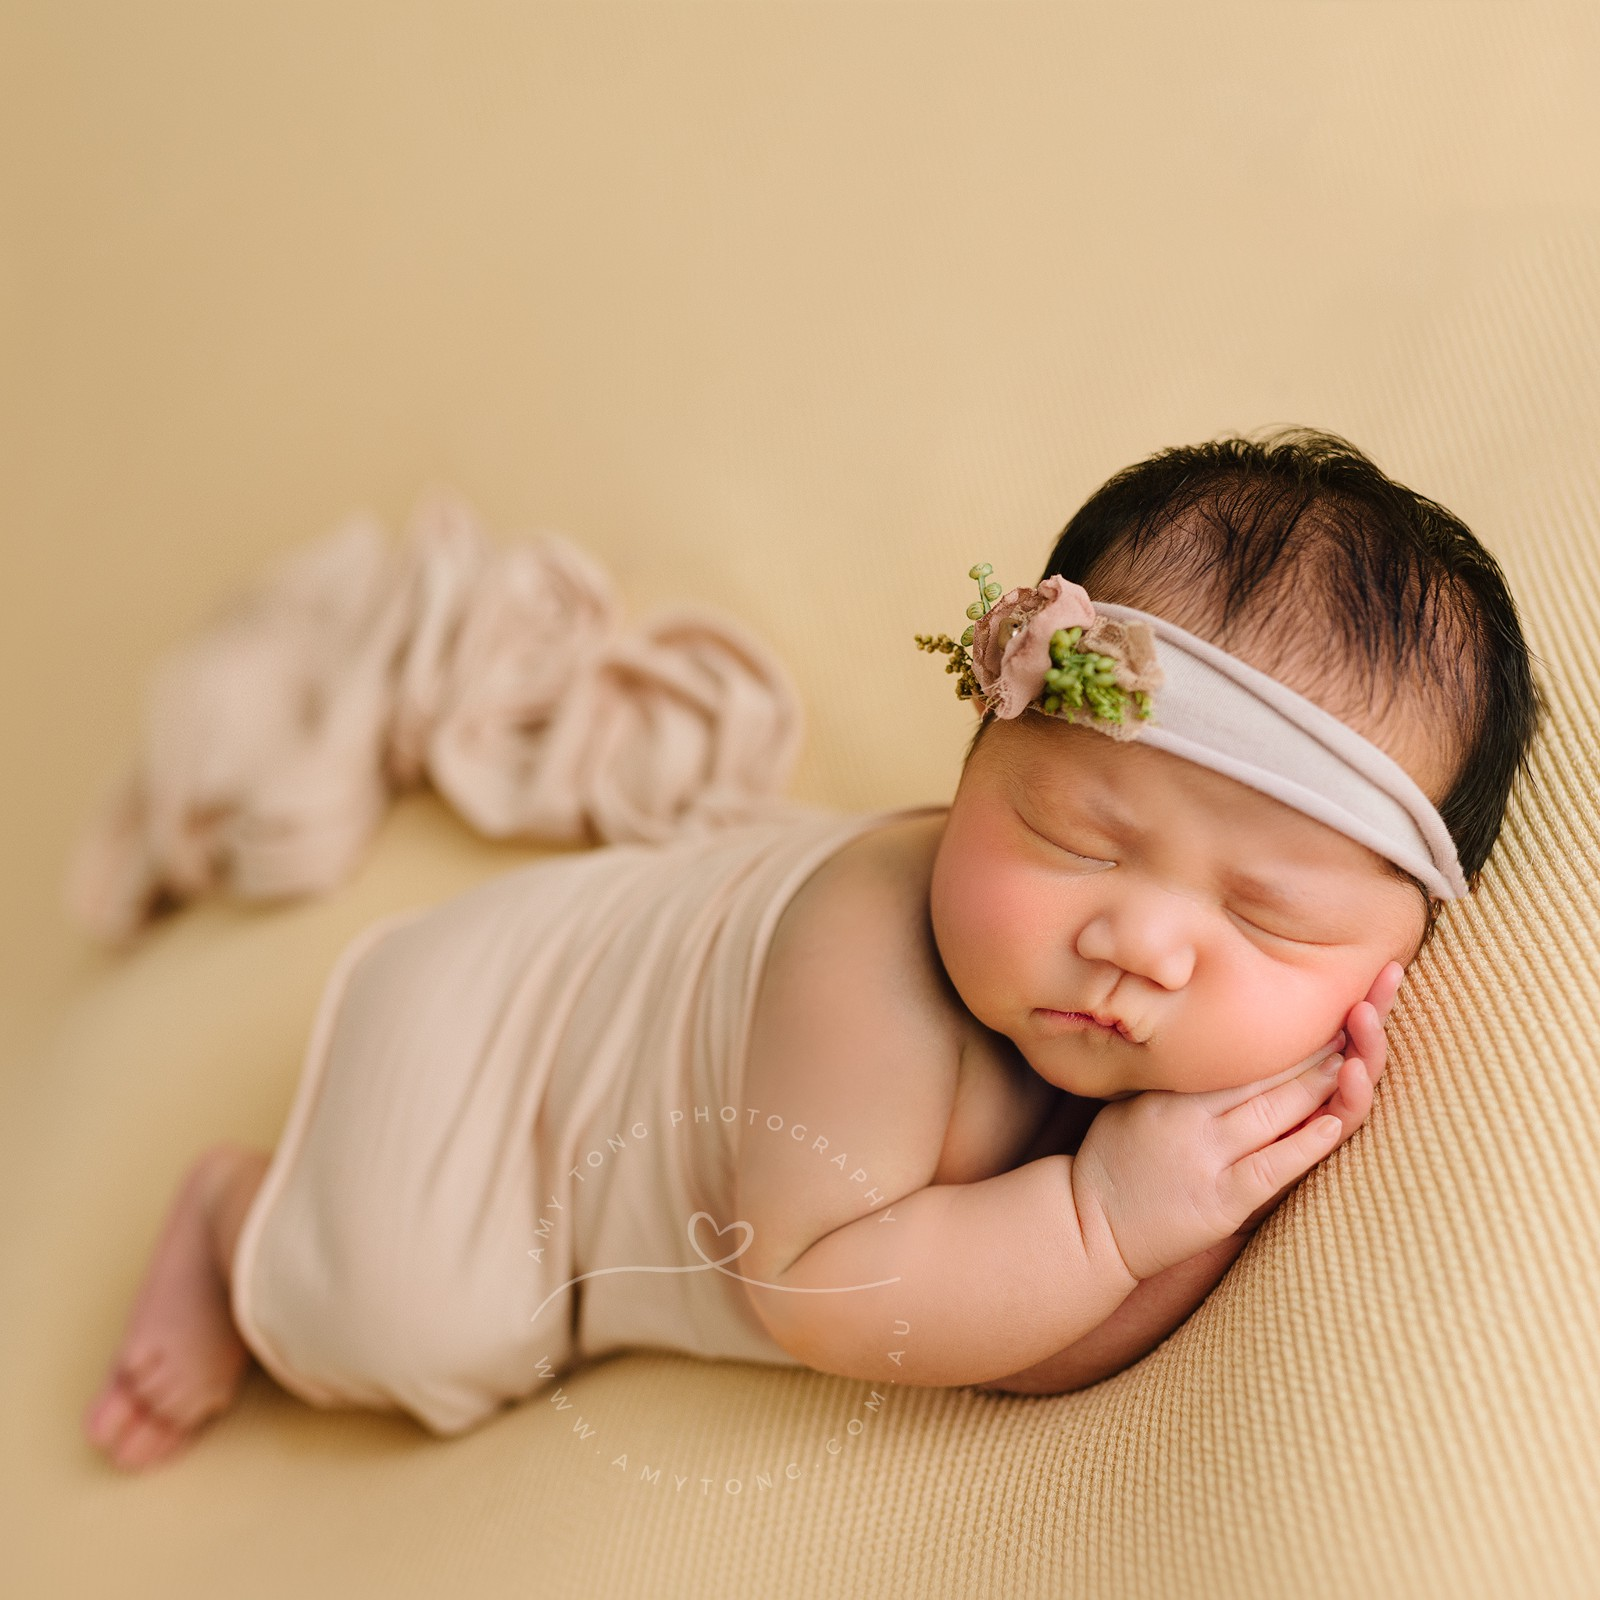 Newborn photography is a very specialised area for the best photos of your precious baby be sure to choose the right newborn photographer with lots of